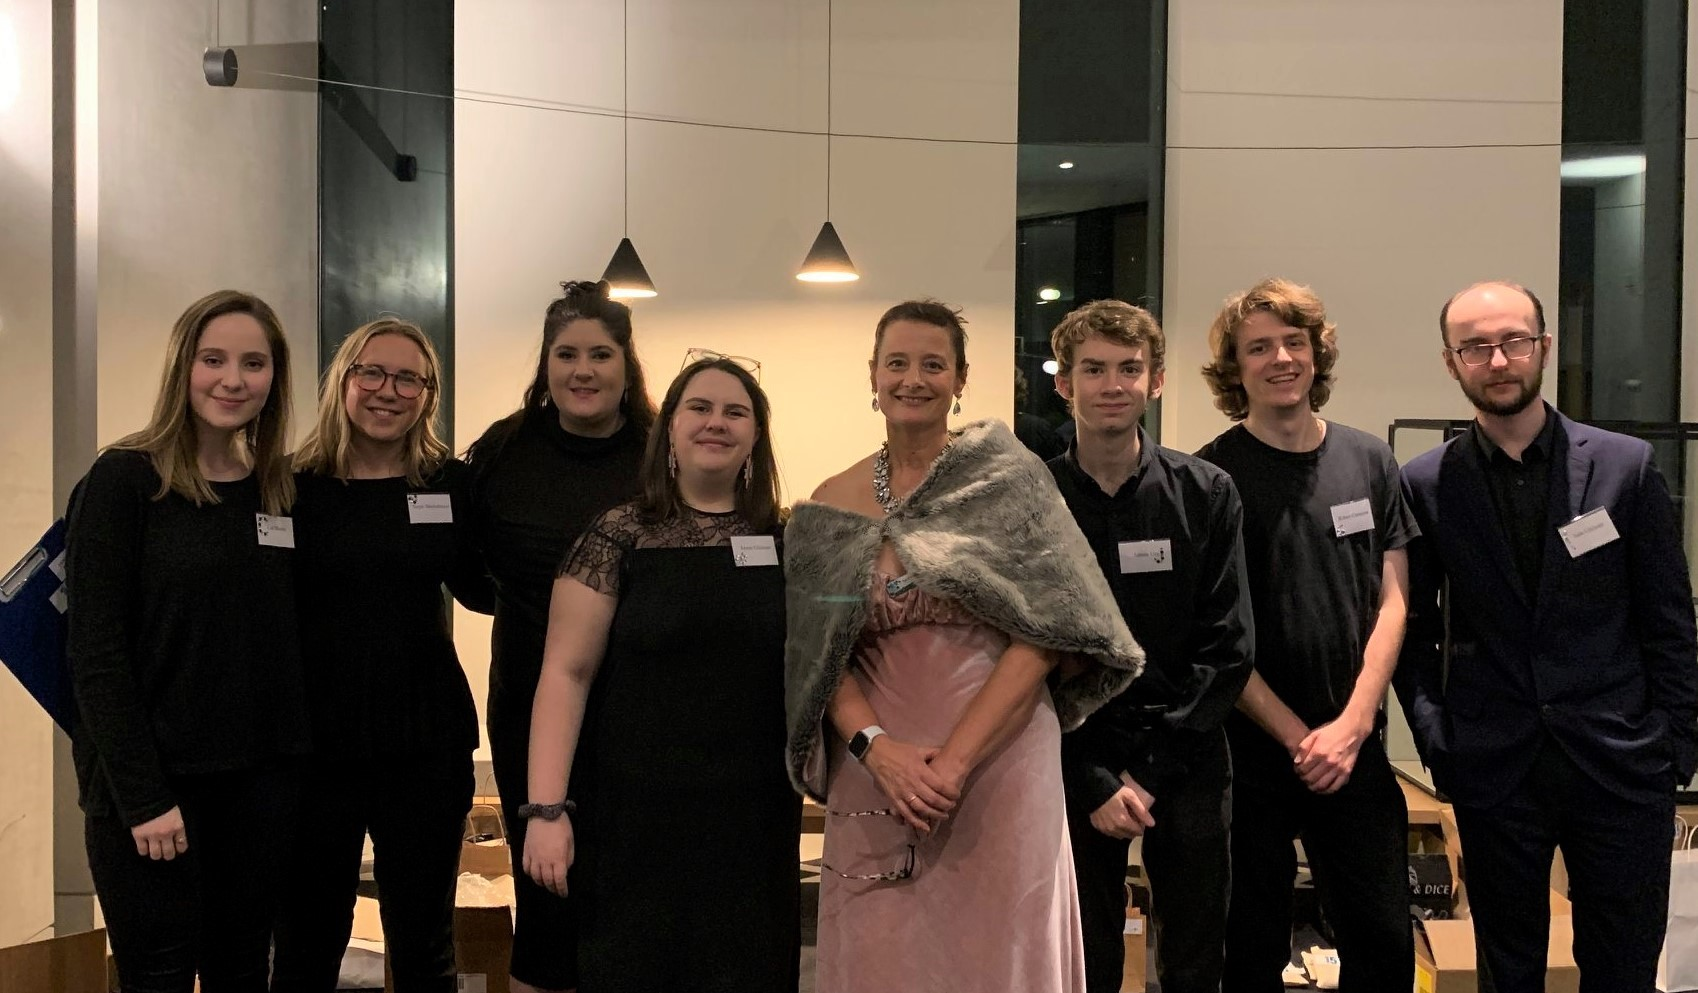 Sue O'Shea with the volunteers at The Learning For Life Autism Centre's Crystal Ball in May 2019.